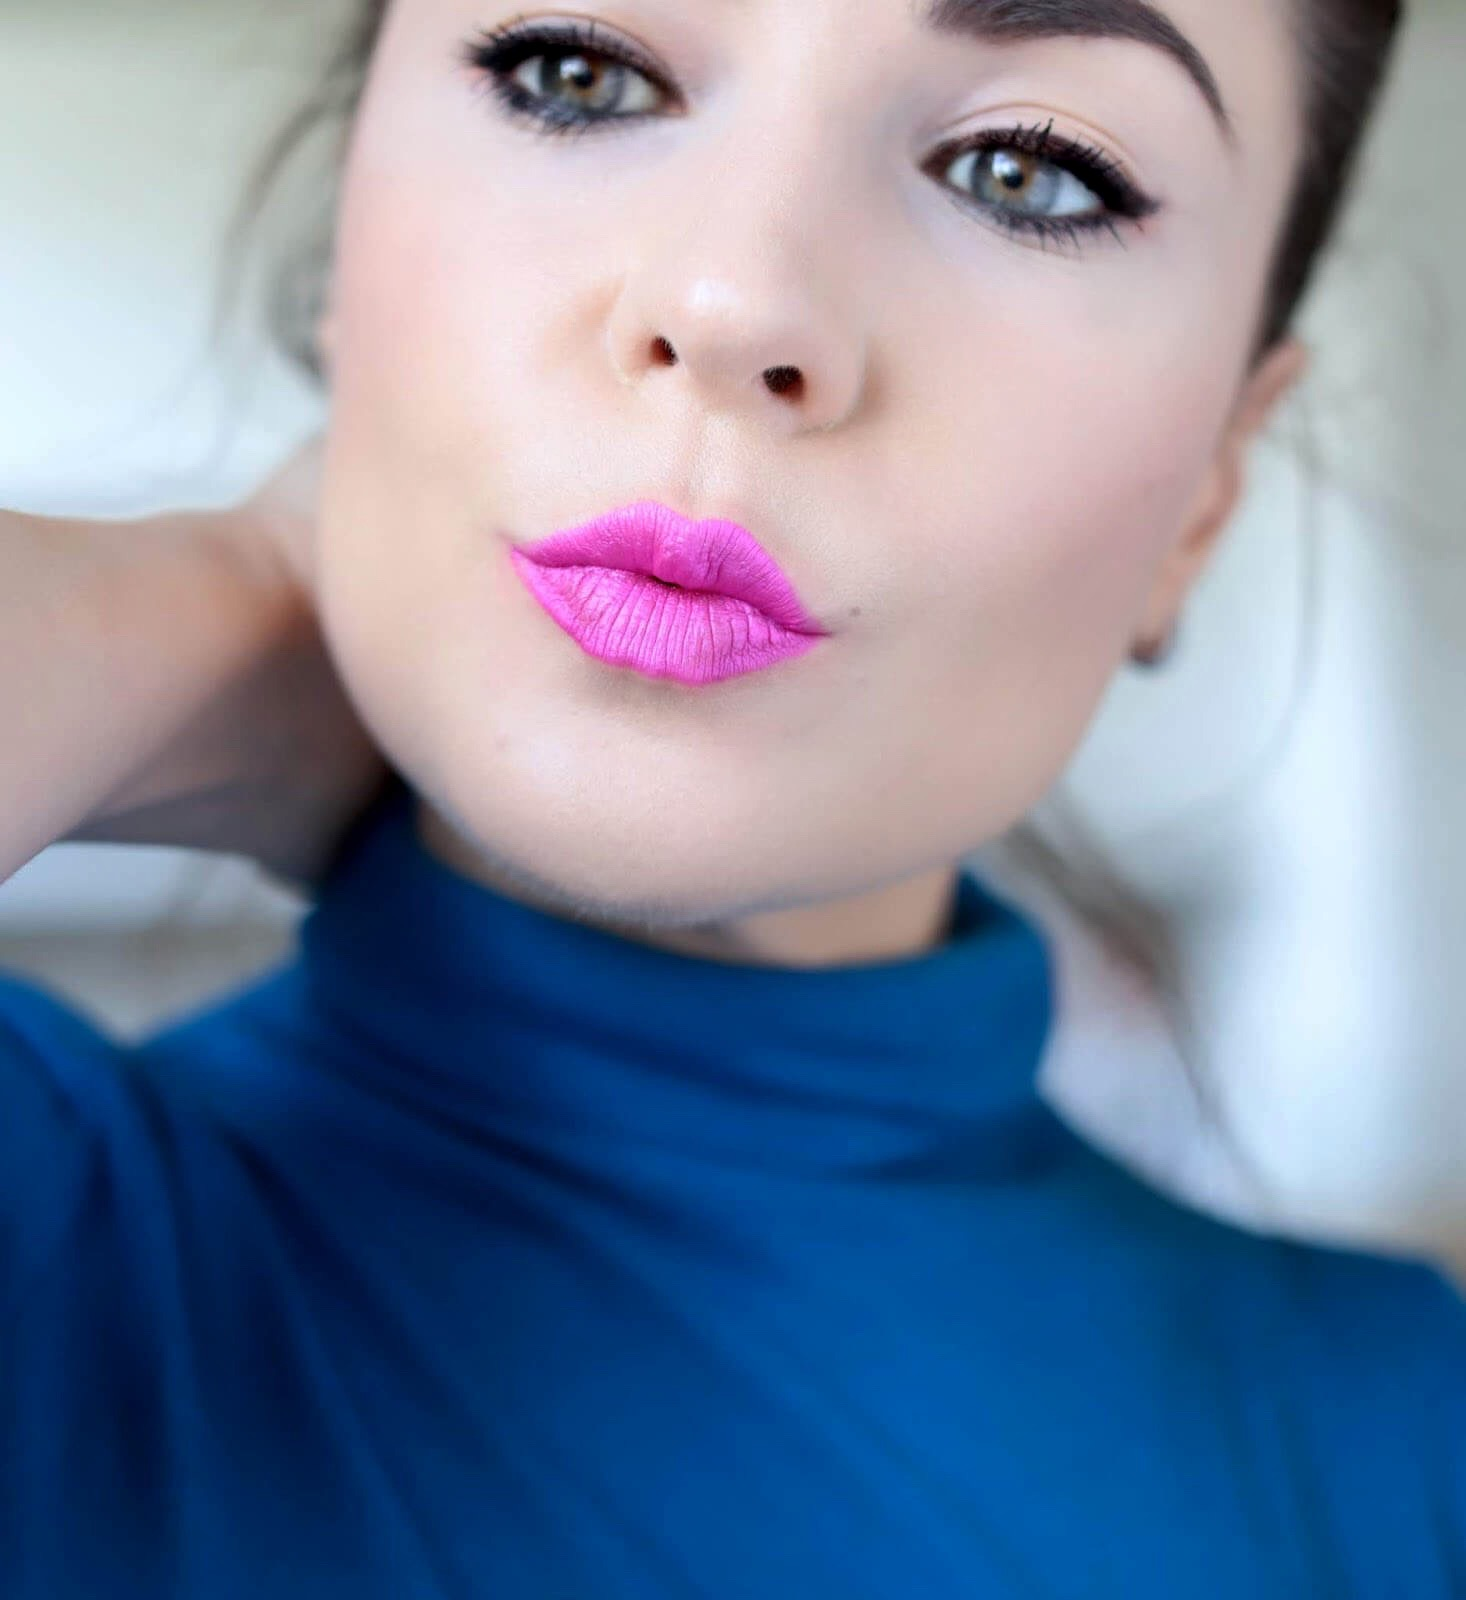 Tom Ford Lip Laquer 03 Panty Pink test